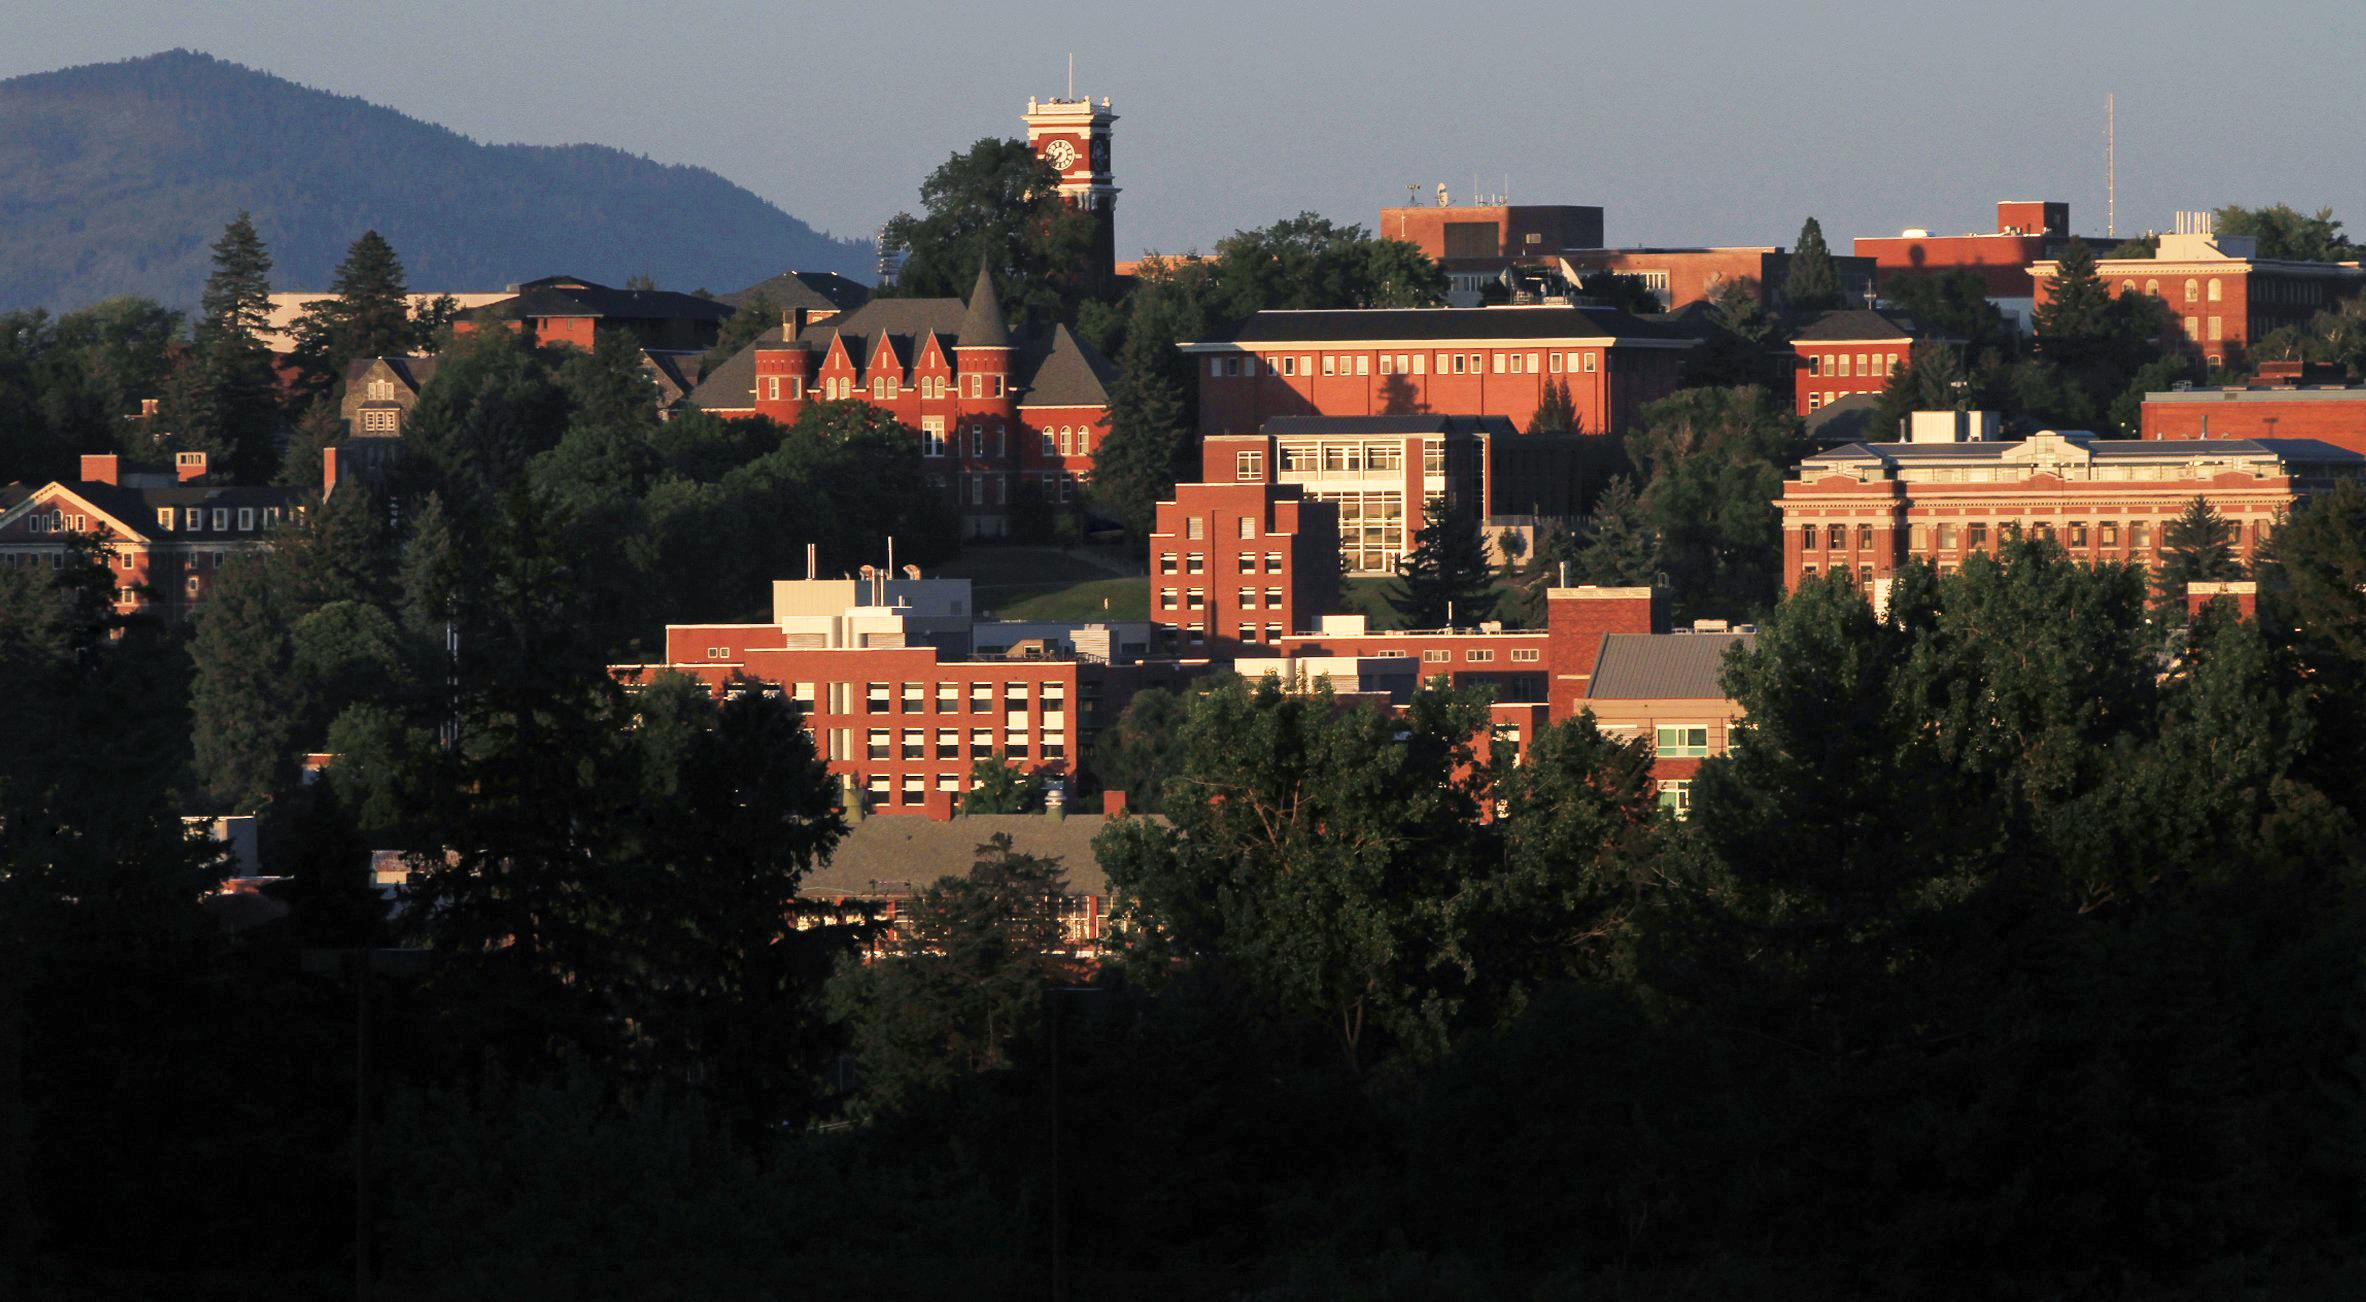 WSU settles class action suit over 2017 hard drive theft